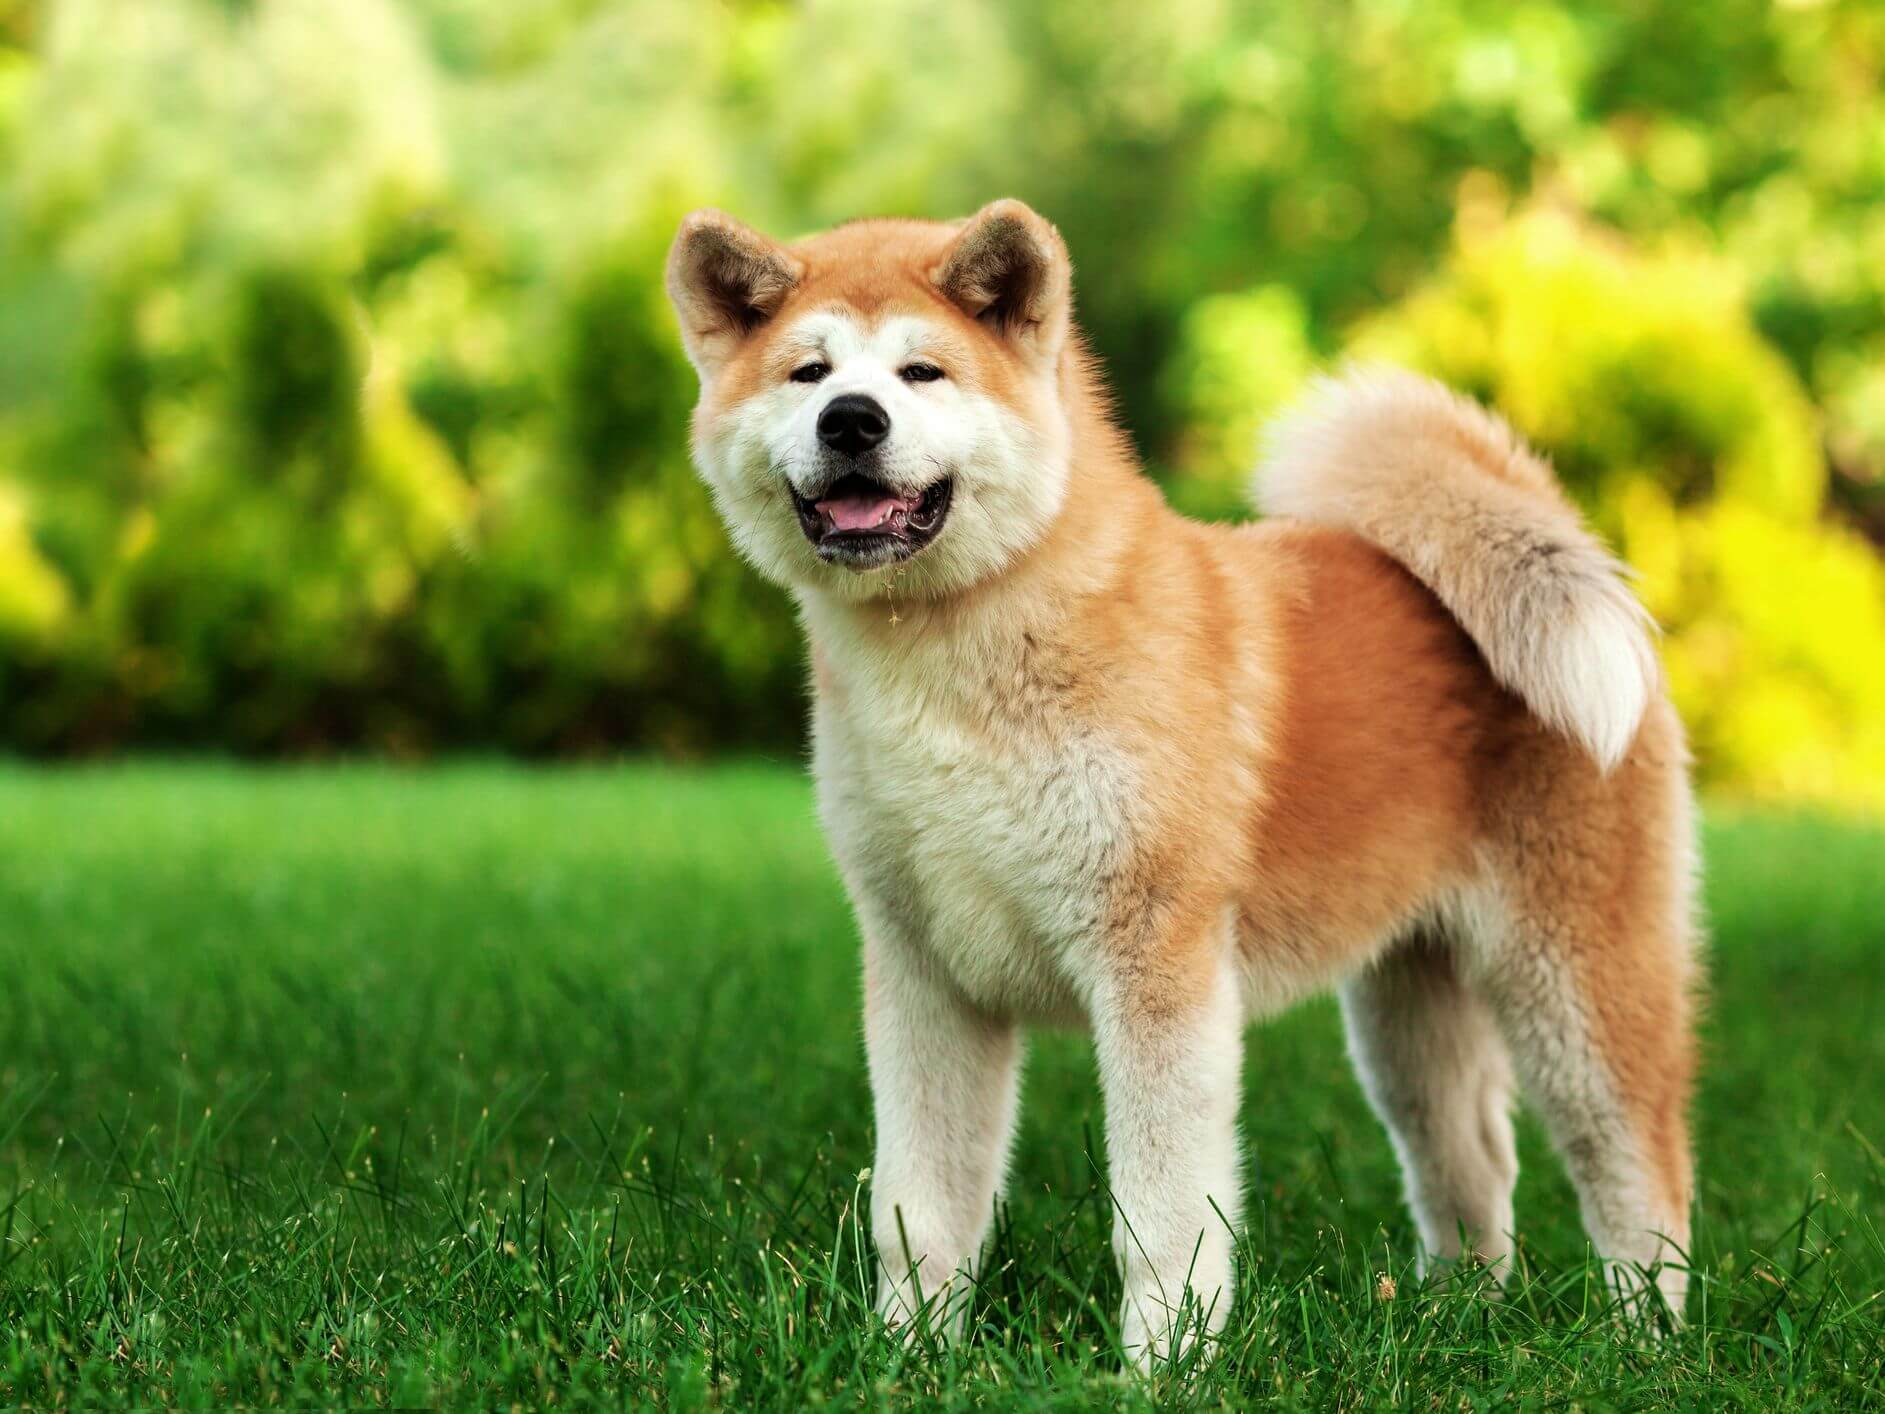 How to Train an Akita